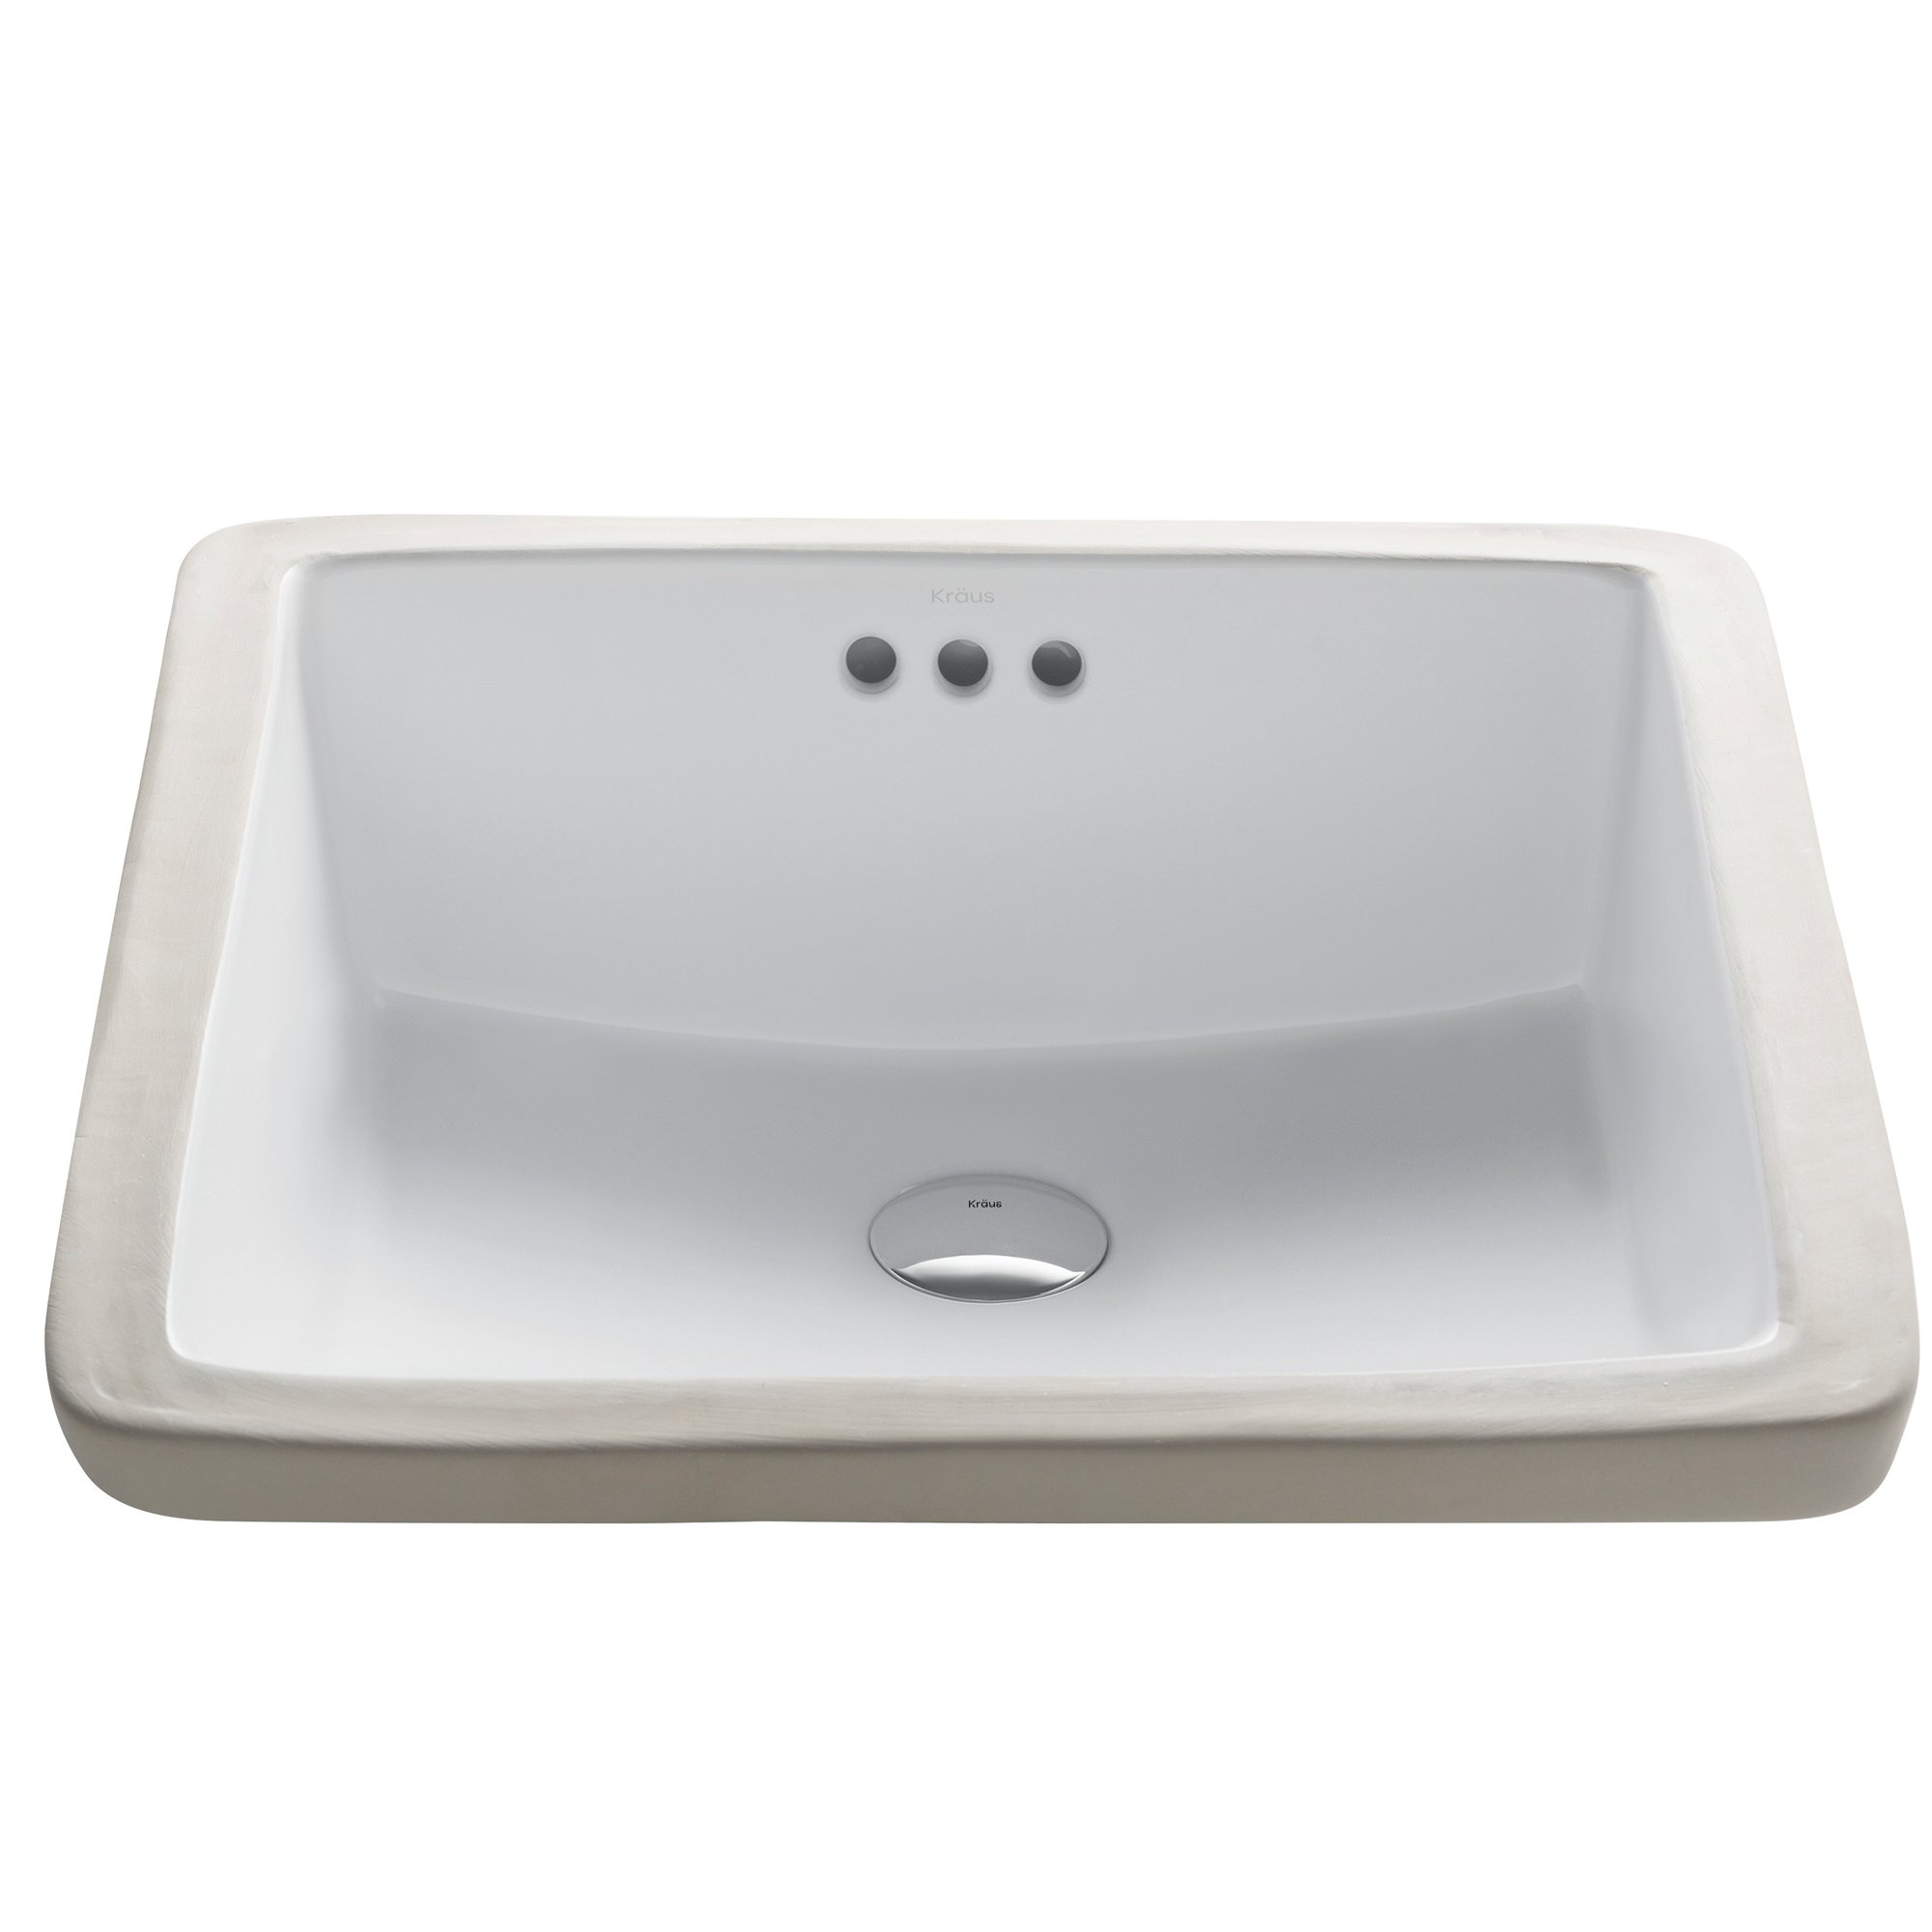 Kraus KCU-231 Modern Elavo Ceramic Square Undermount Bathroom Sink with Overflow, White